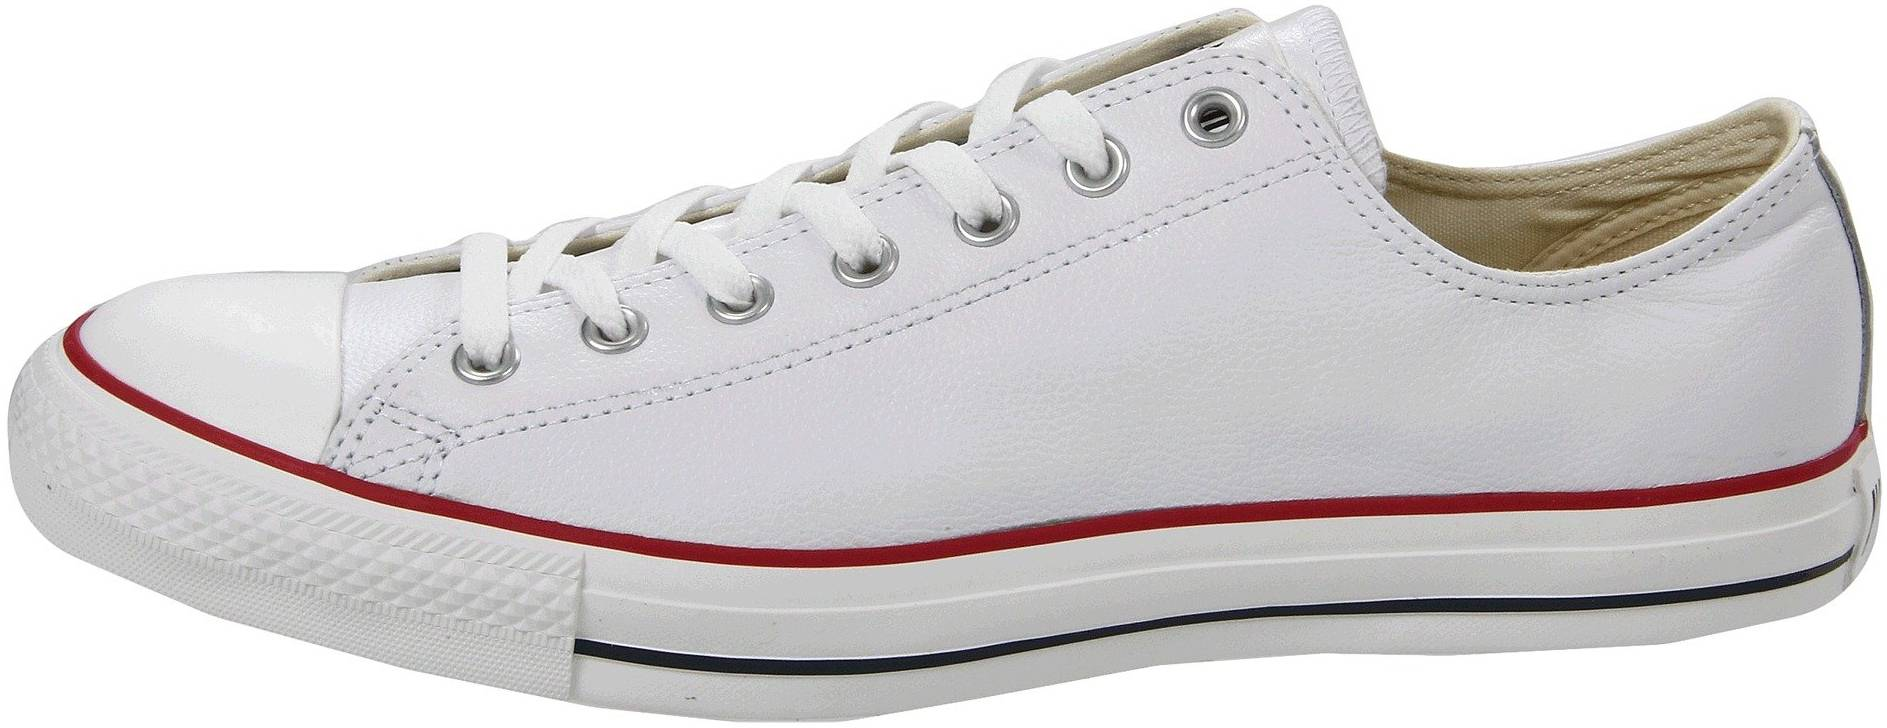 Converse Chuck Taylor All Star Leather Ox sneakers in 4 colors ...